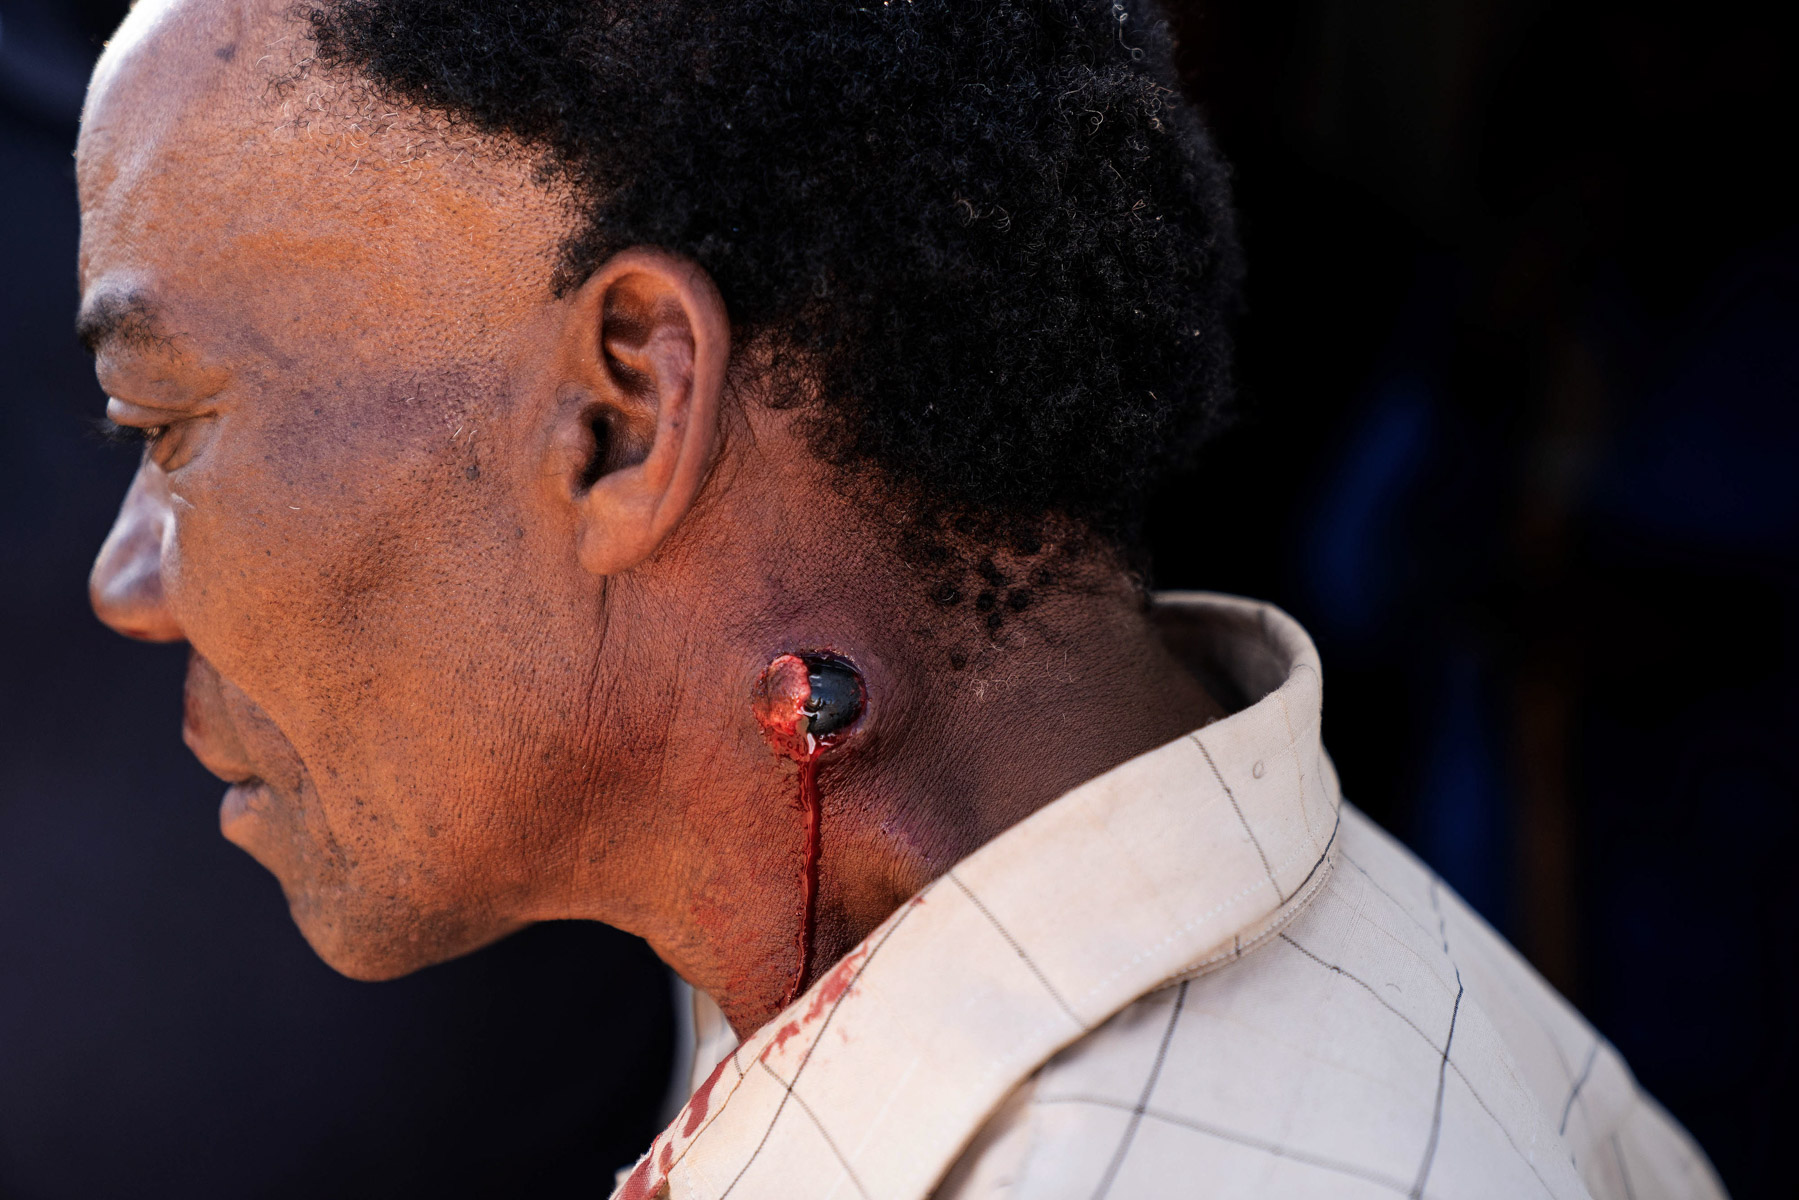 21 April 2020: A metro police officer shot Stanley Zaki in the neck at close range with a rubber bullet, which lodged in his flesh. (Photograph by James Oatway)